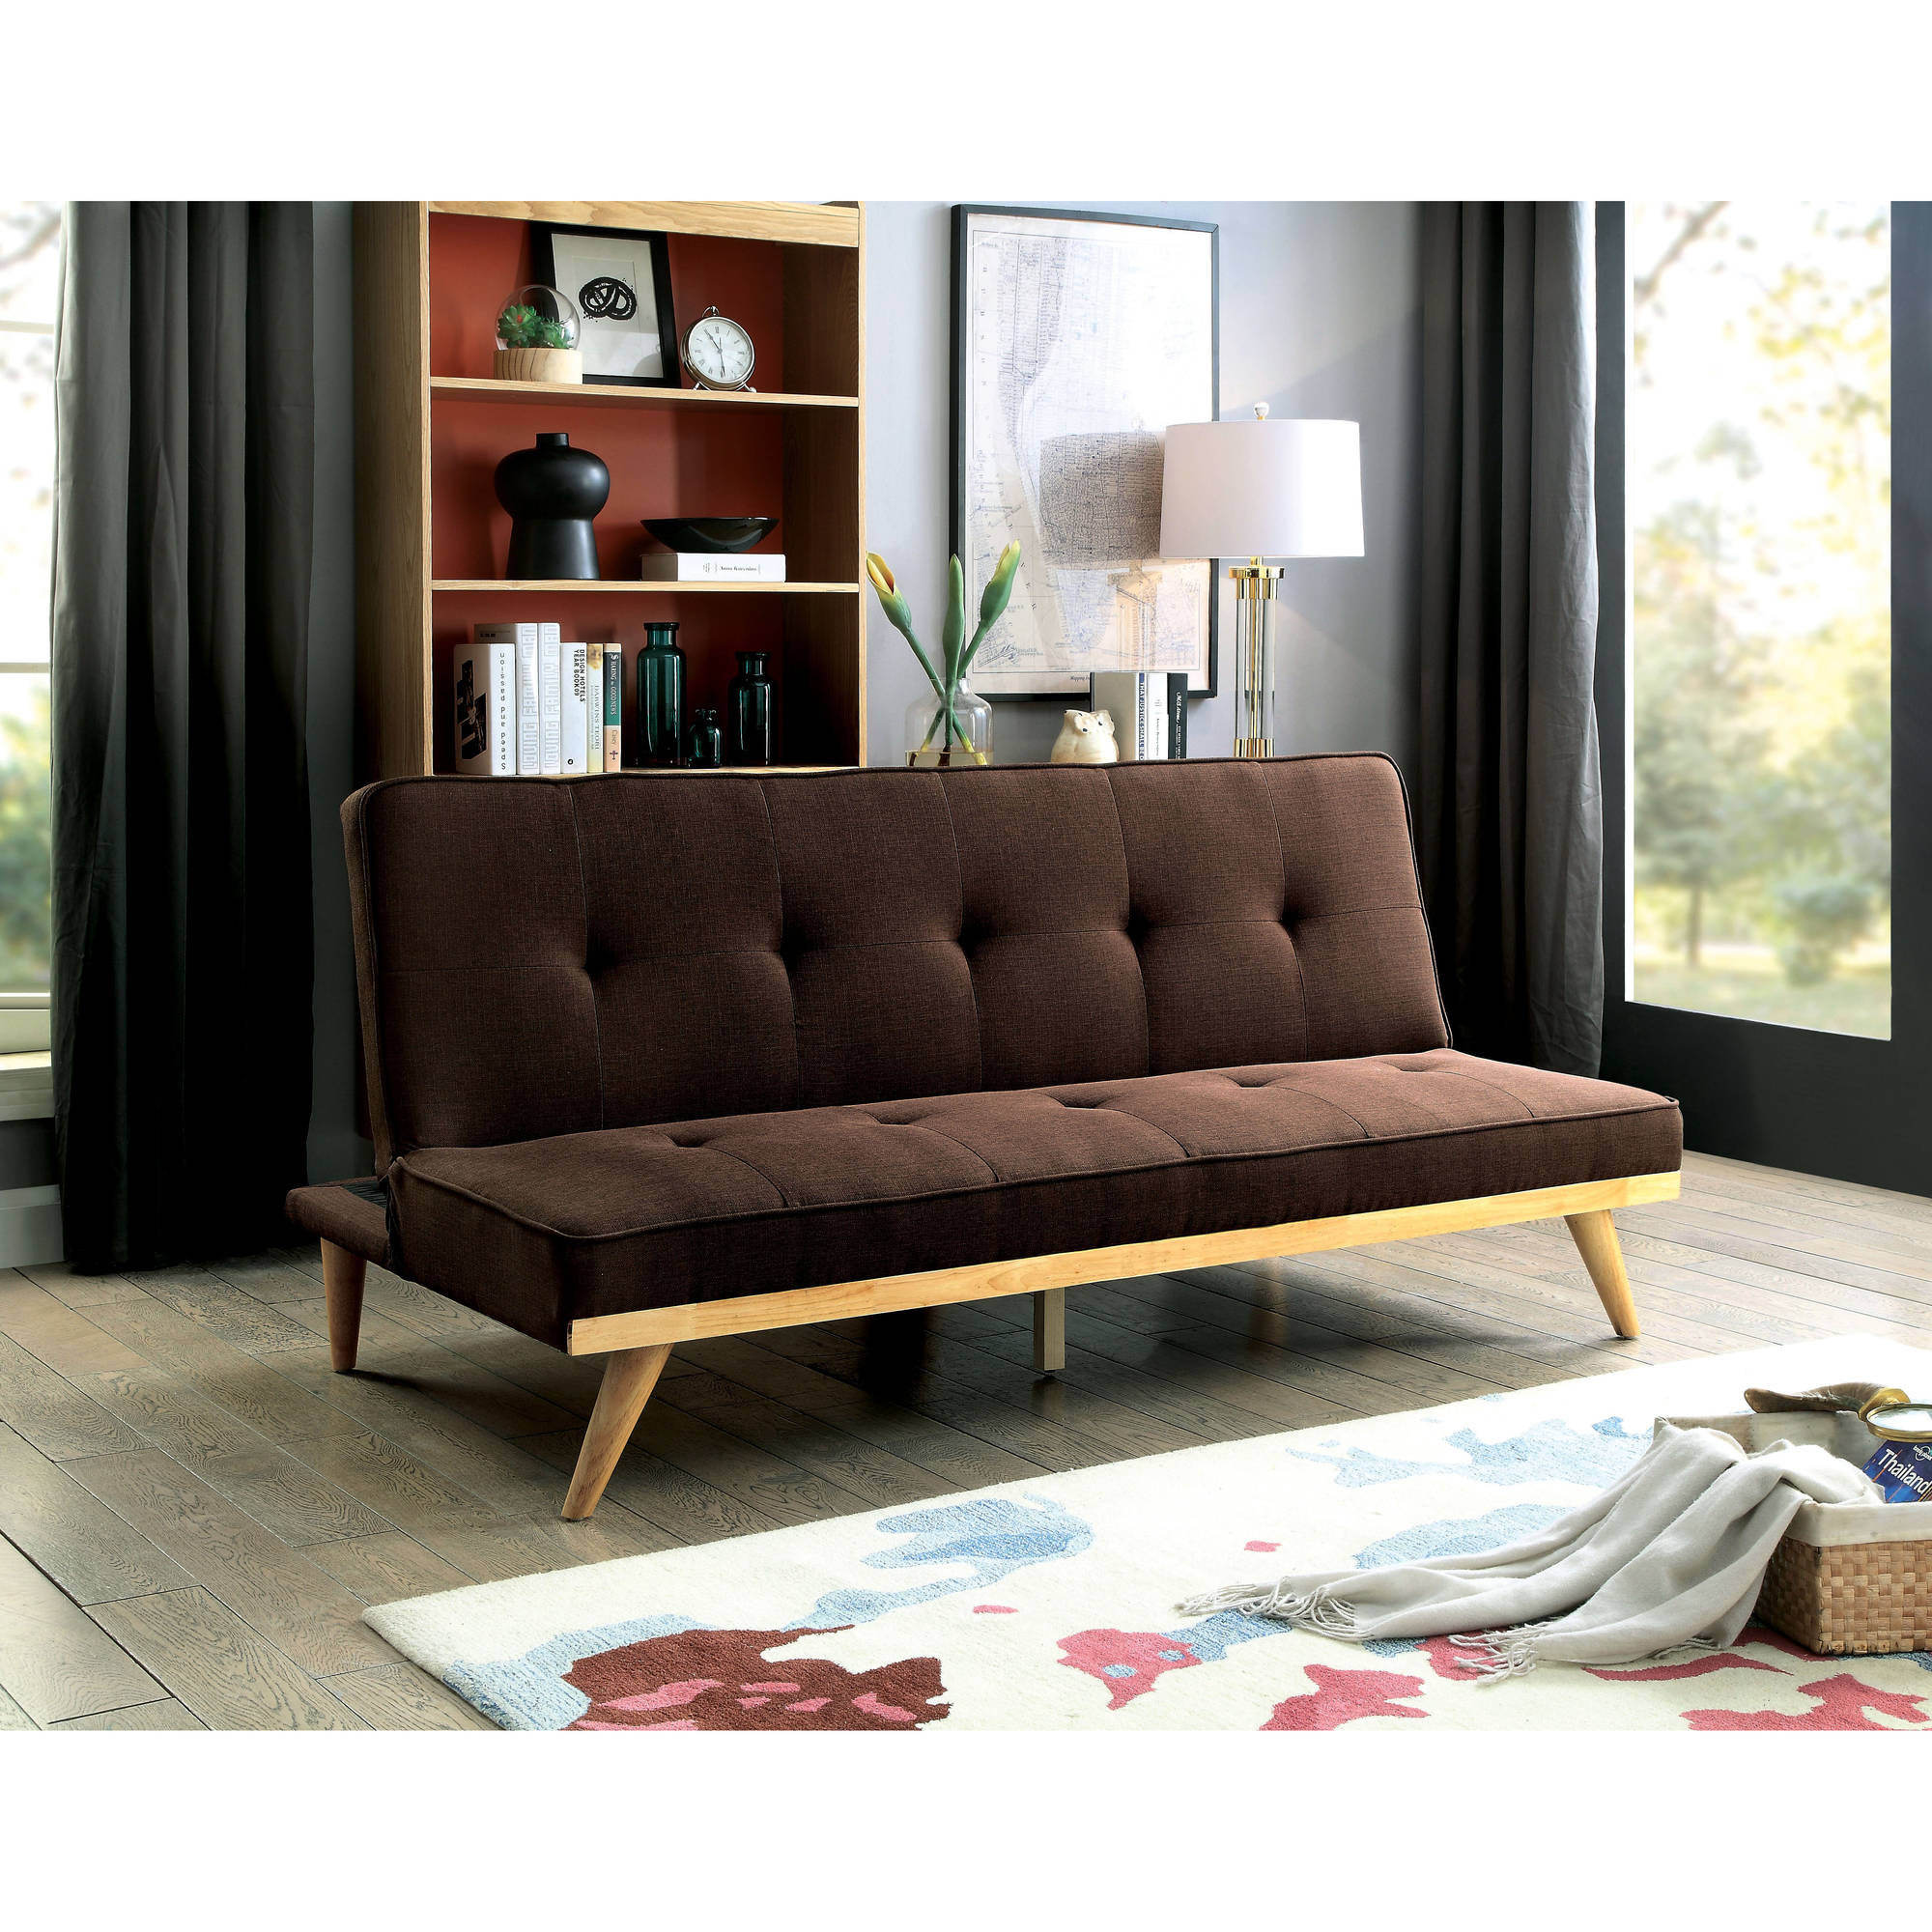 Furniture of America Spates Mid-Century Futon, Multiple Colors